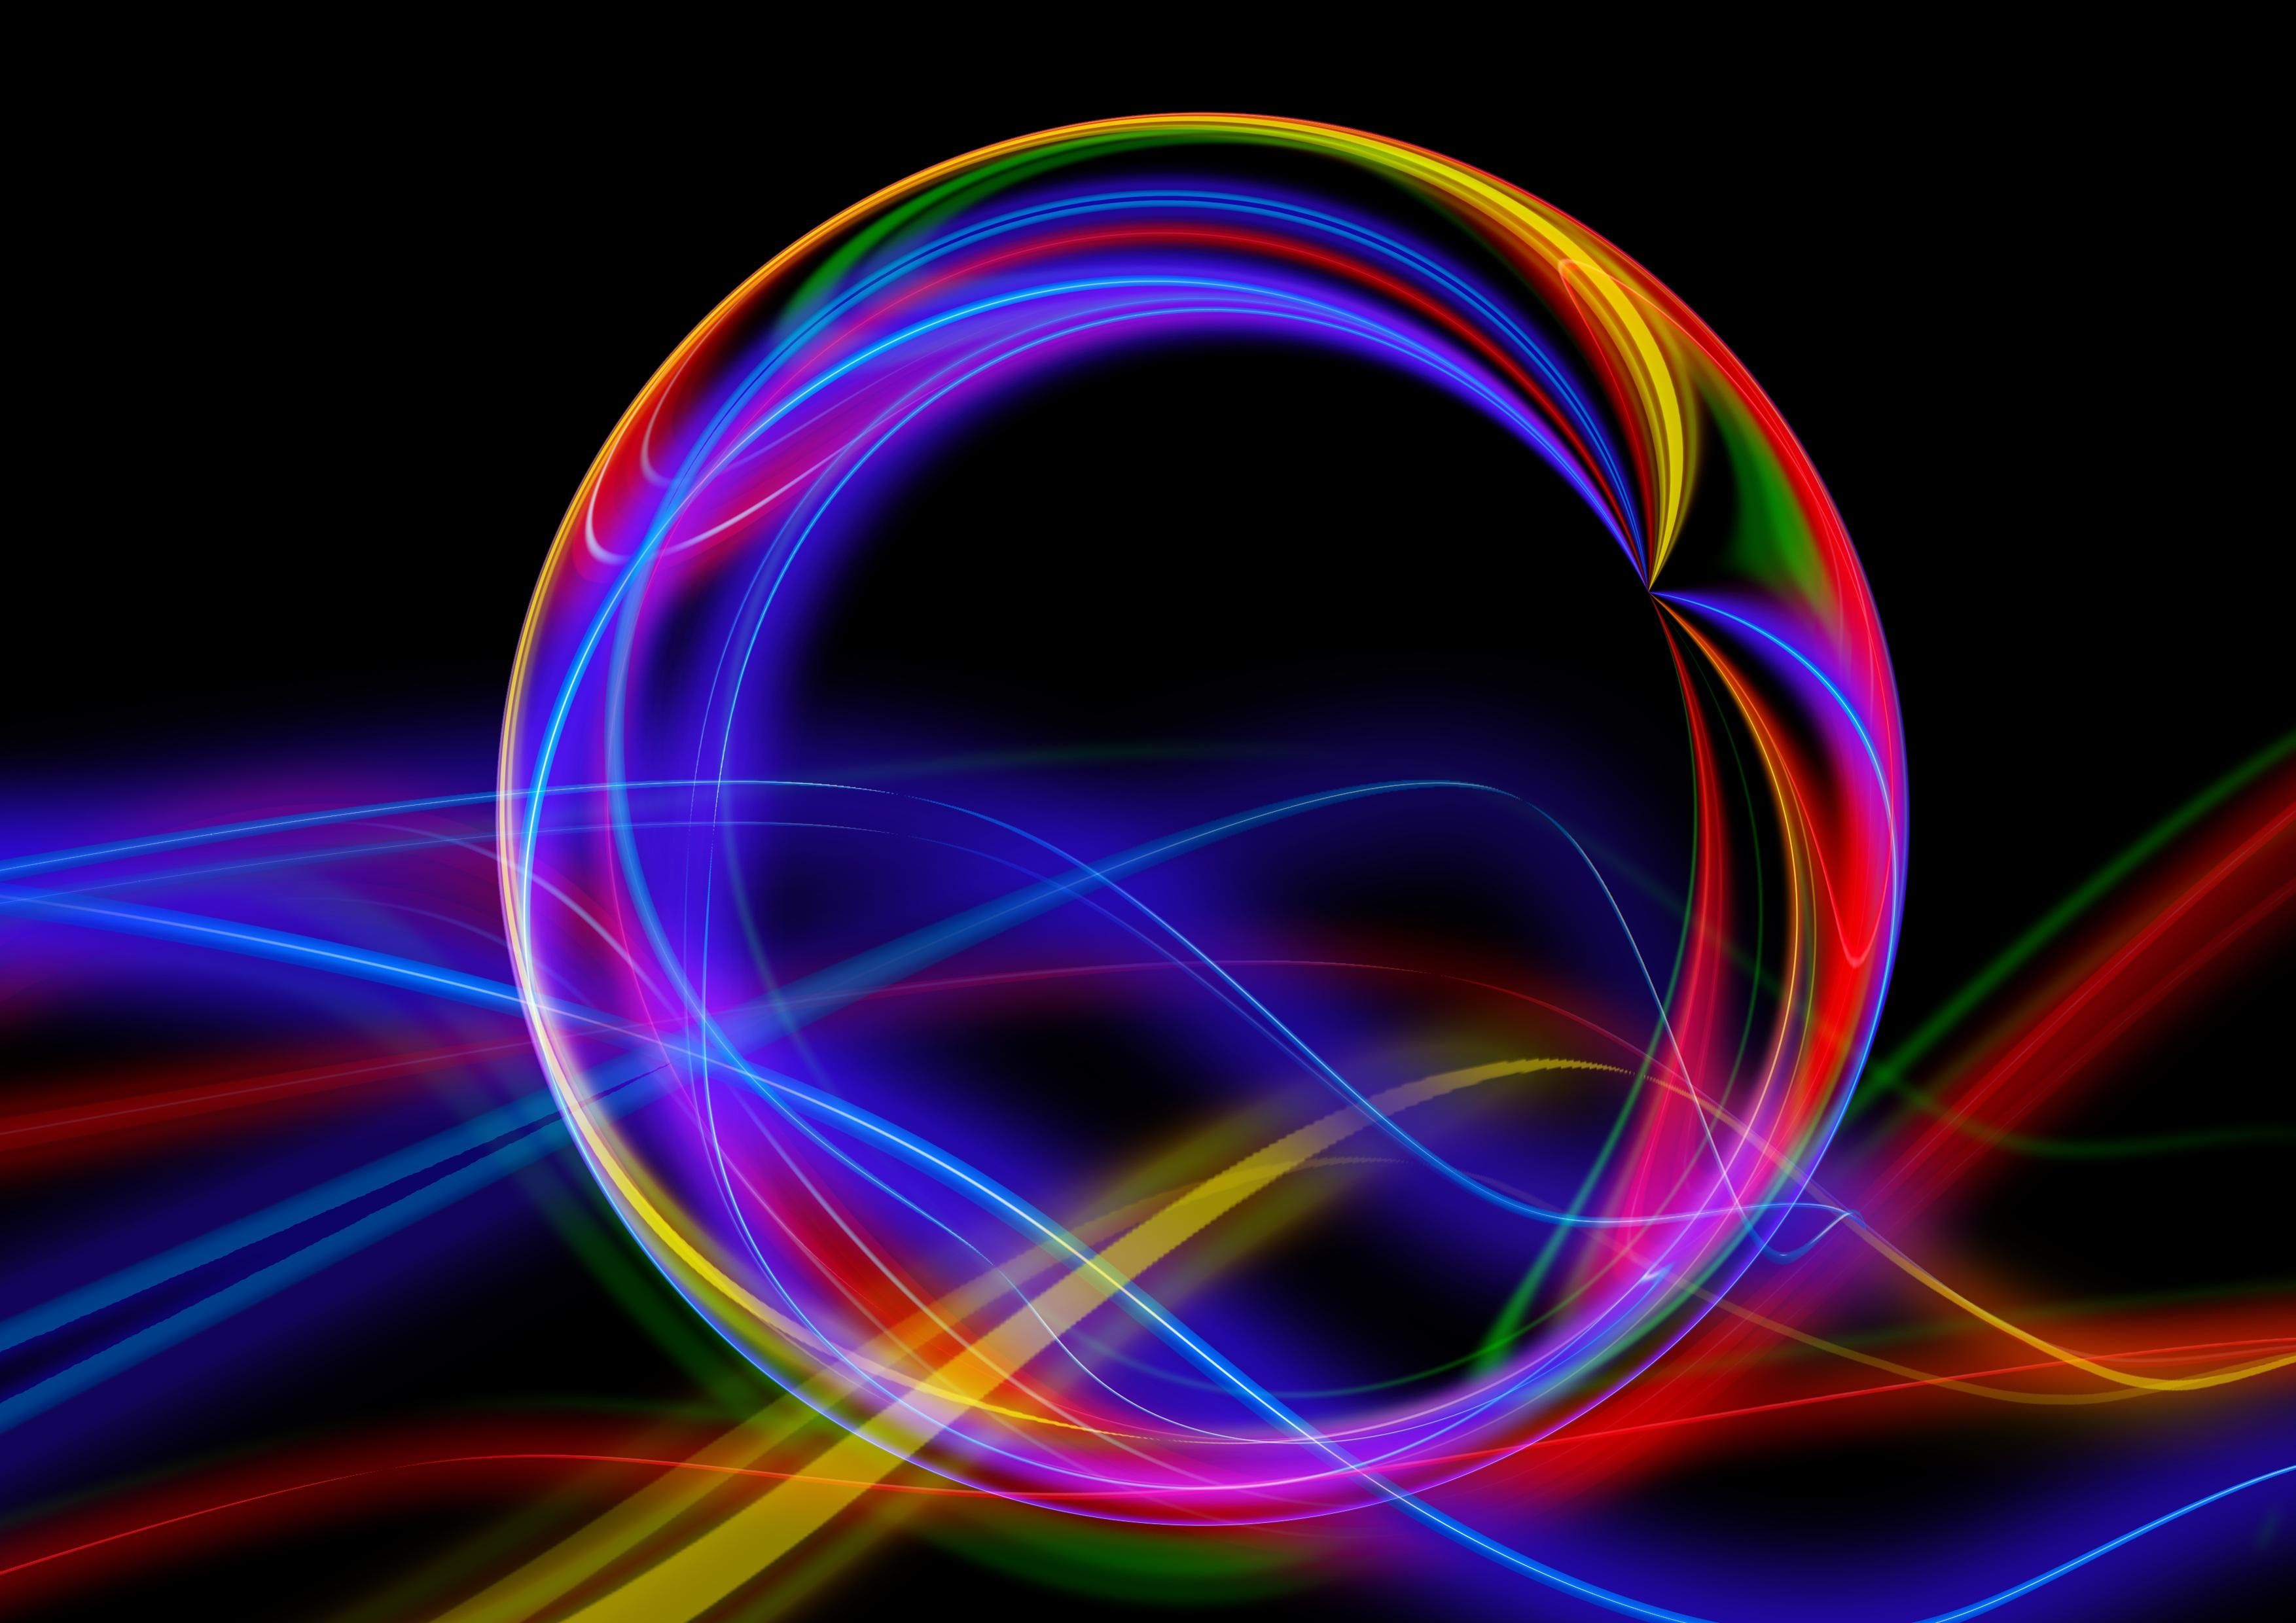 Ball Colorful Line Abstraction Sphere Background 3043537 Hd Wallpaper Backgrounds Download